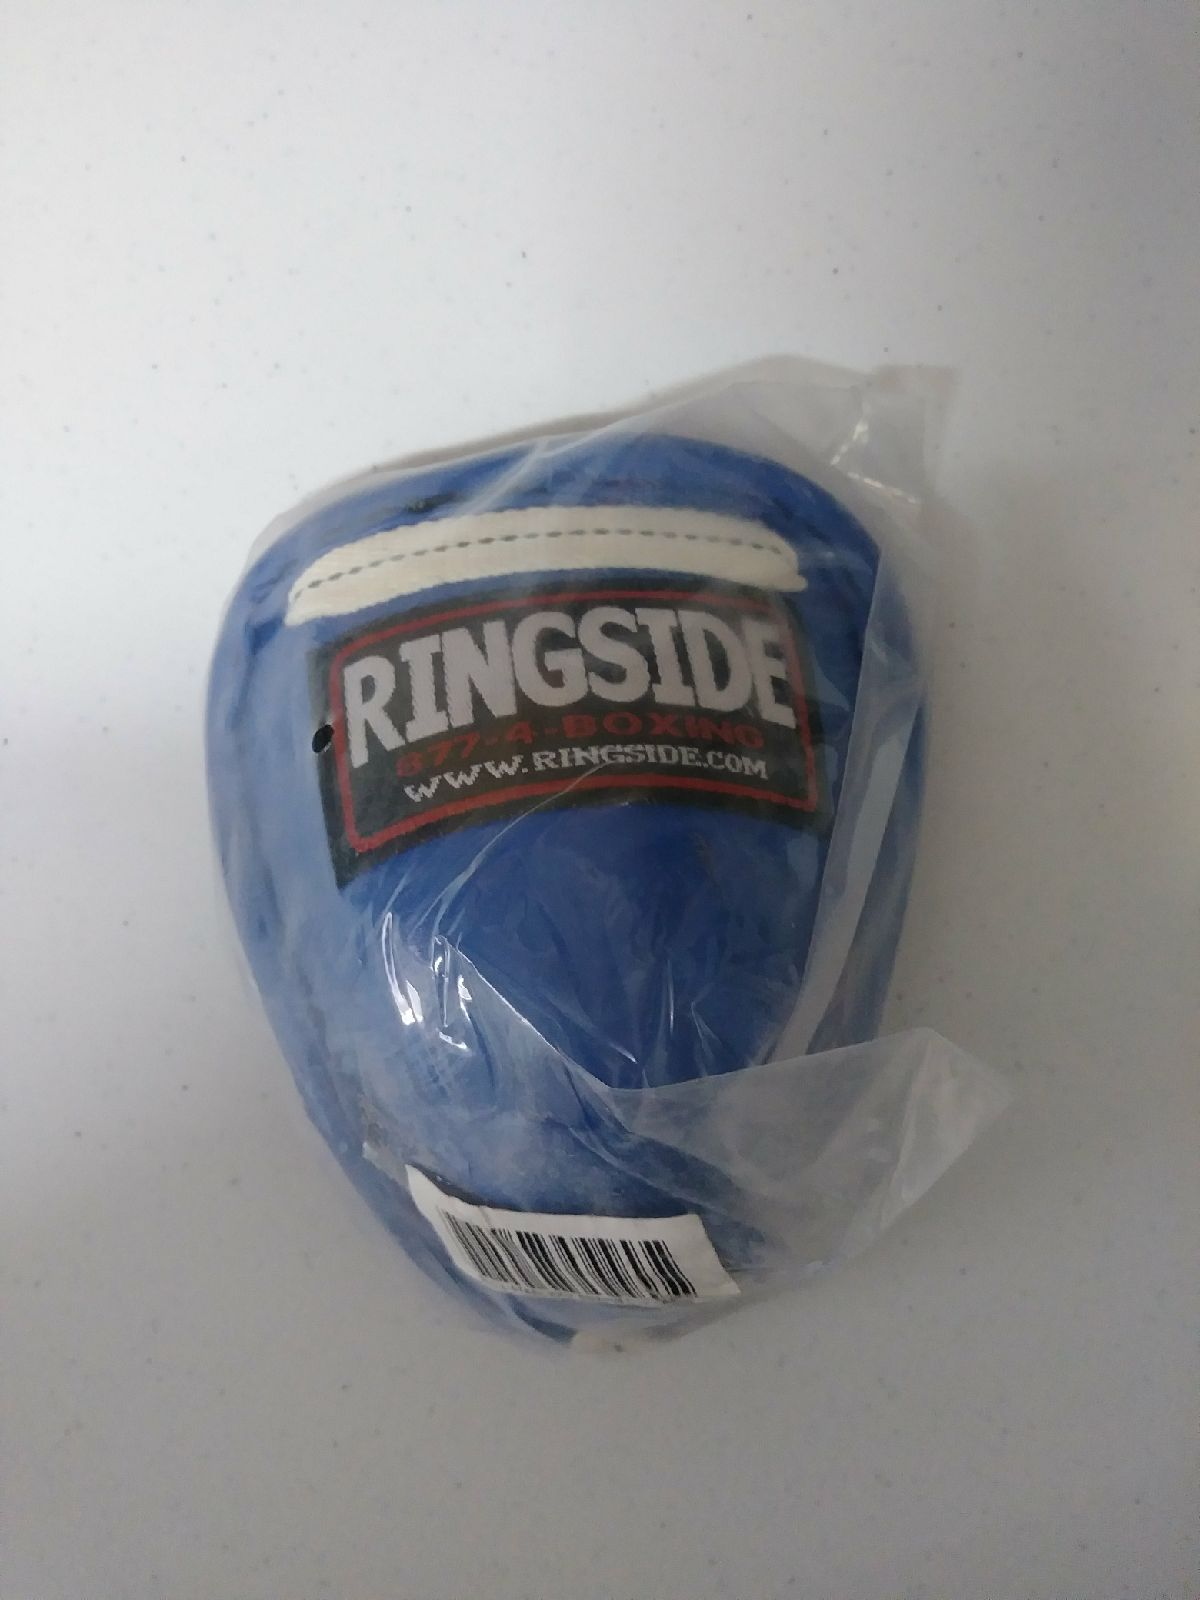 Ringside STEEL GROIN PROTECTOR cup - L